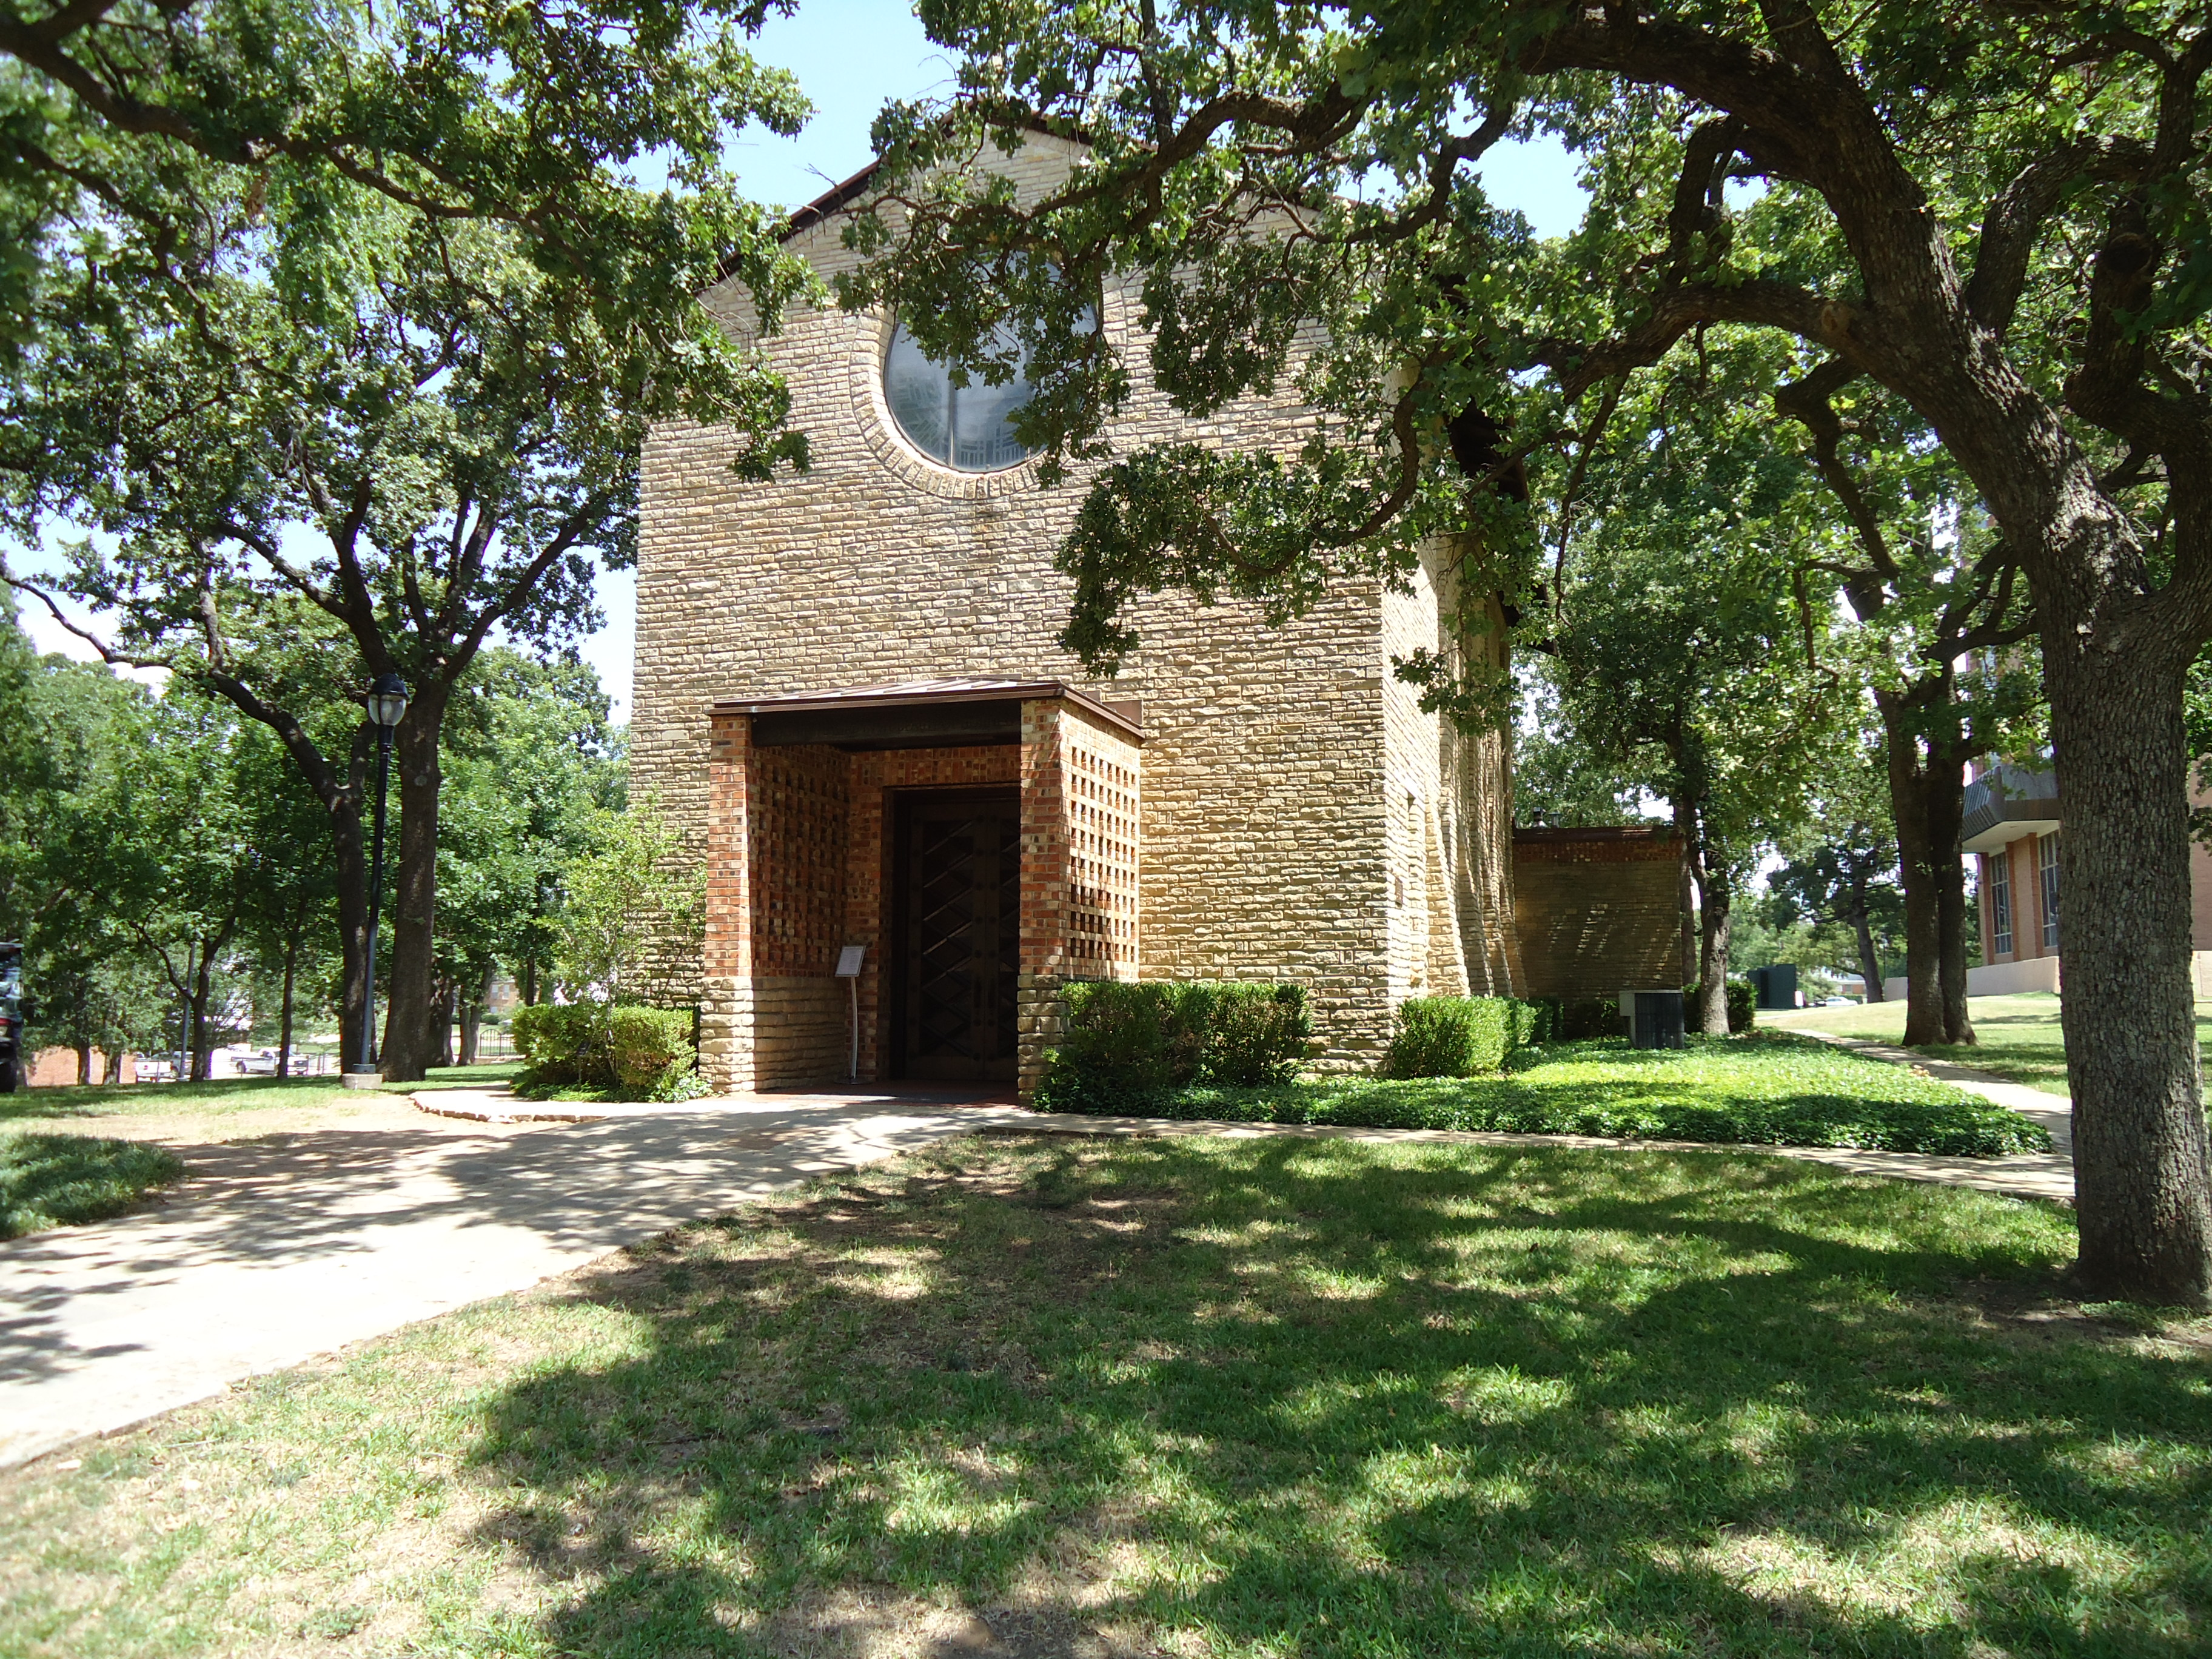 Little Chapel in the Woods (TWU) - Denton TX - Living New Deal on utsw campus map, university of minnesota campus map, college station texas a&m university campus map, bac campus map, western university campus map, unt denton campus map, wwu campus map, university of richmond va campus map, roger williams university campus map, dwu campus map, scsu campus map, kctcs campus map, iwu campus map, tu campus map, kua campus map, vsu campus map, asu campus map, tsu campus map, texas woman's university campus map, ttu campus map,